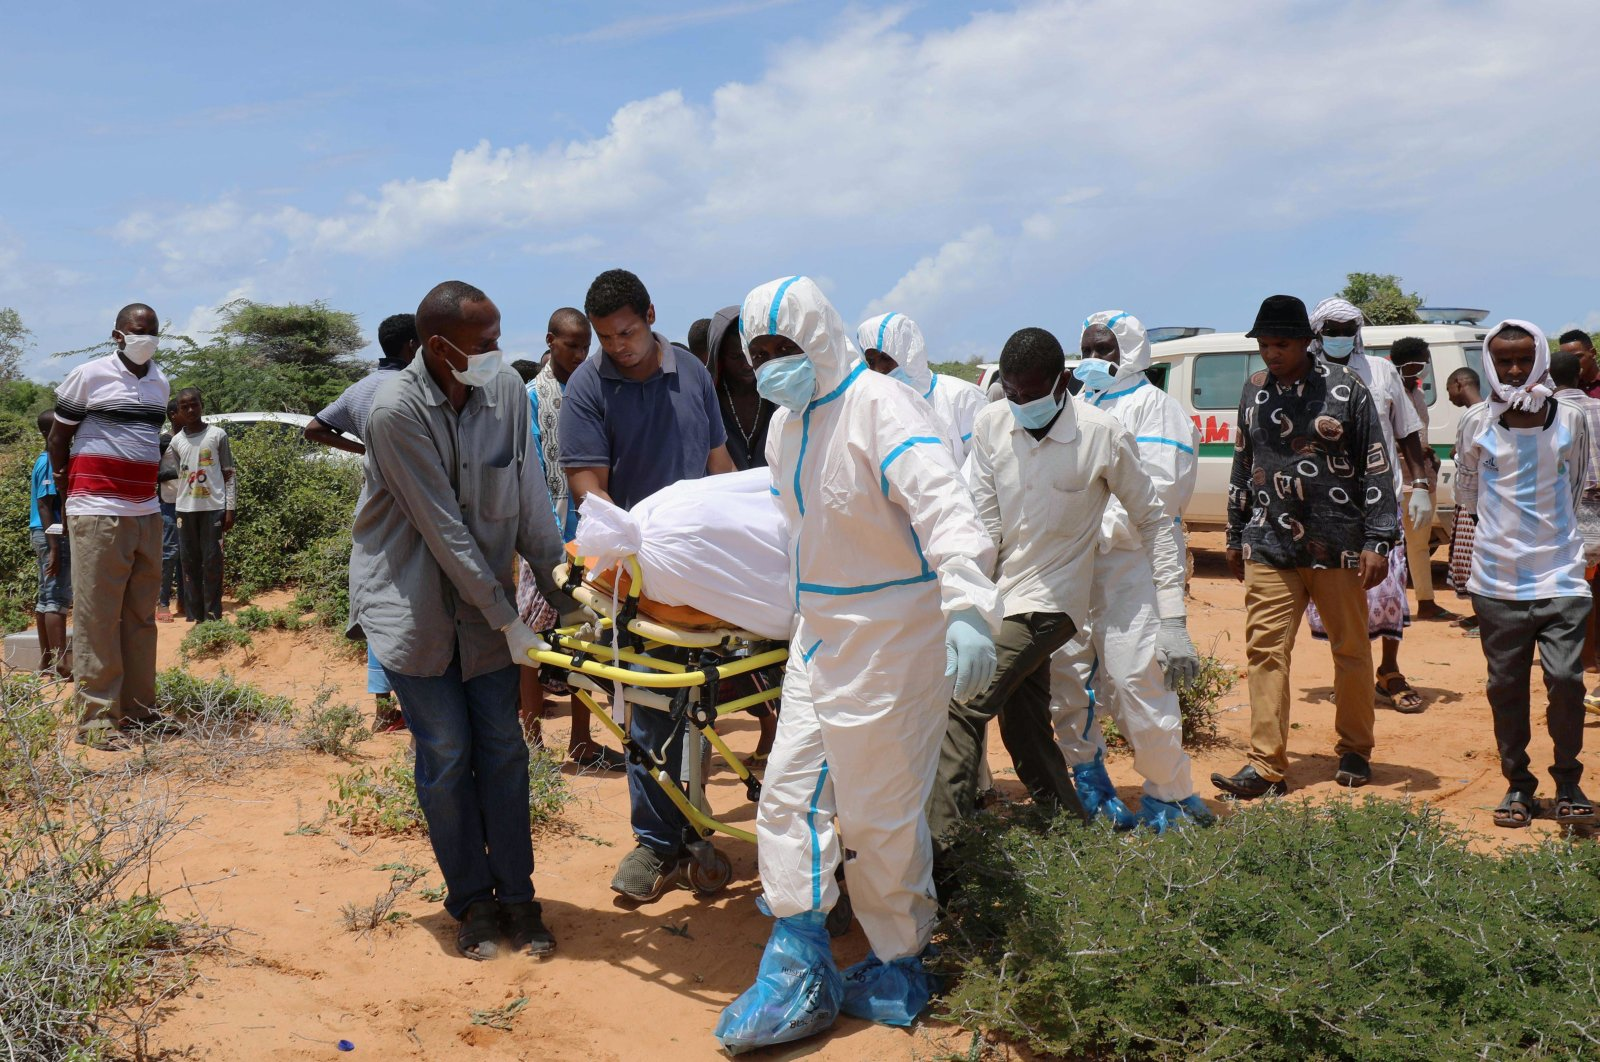 Somali workers in protective suits and civilians carry the body of a man suspected to have died of the coronavirus disease, for burial in Madina district outside of Mogadishu, Somalia April 30, 2020. REUTERS